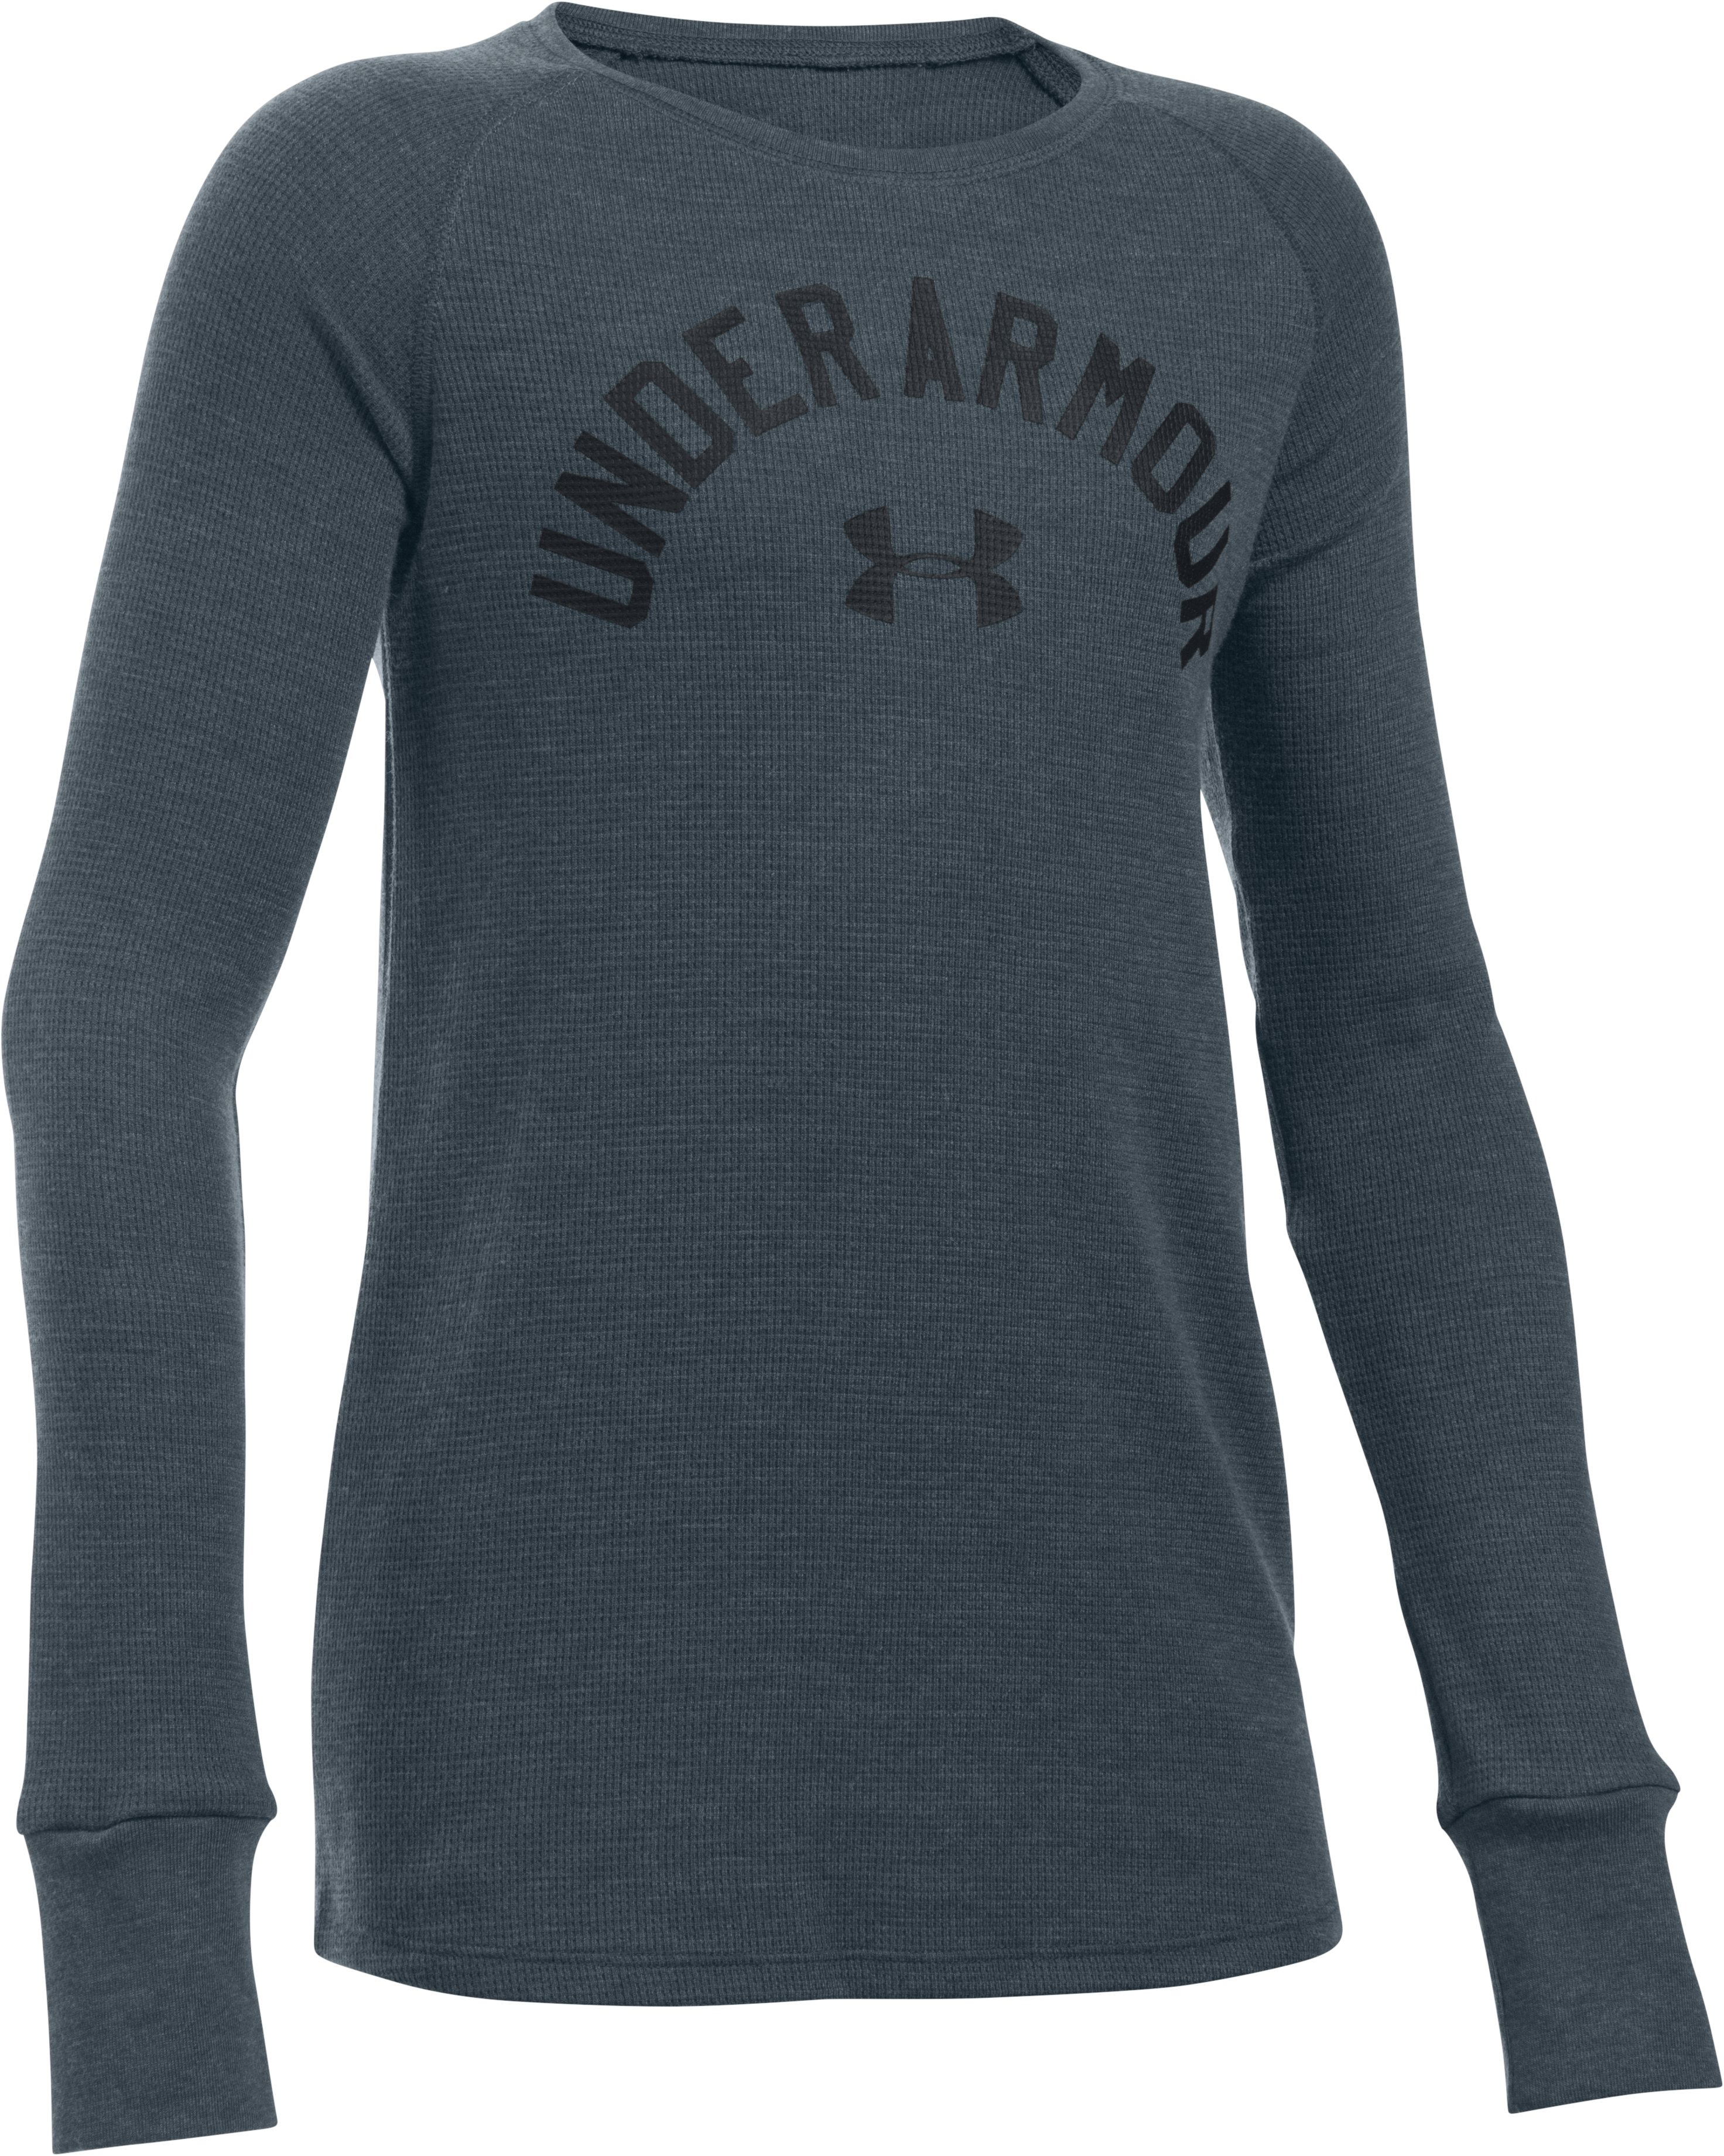 Girls' UA Waffle Long Sleeve, STEALTH GRAY, undefined